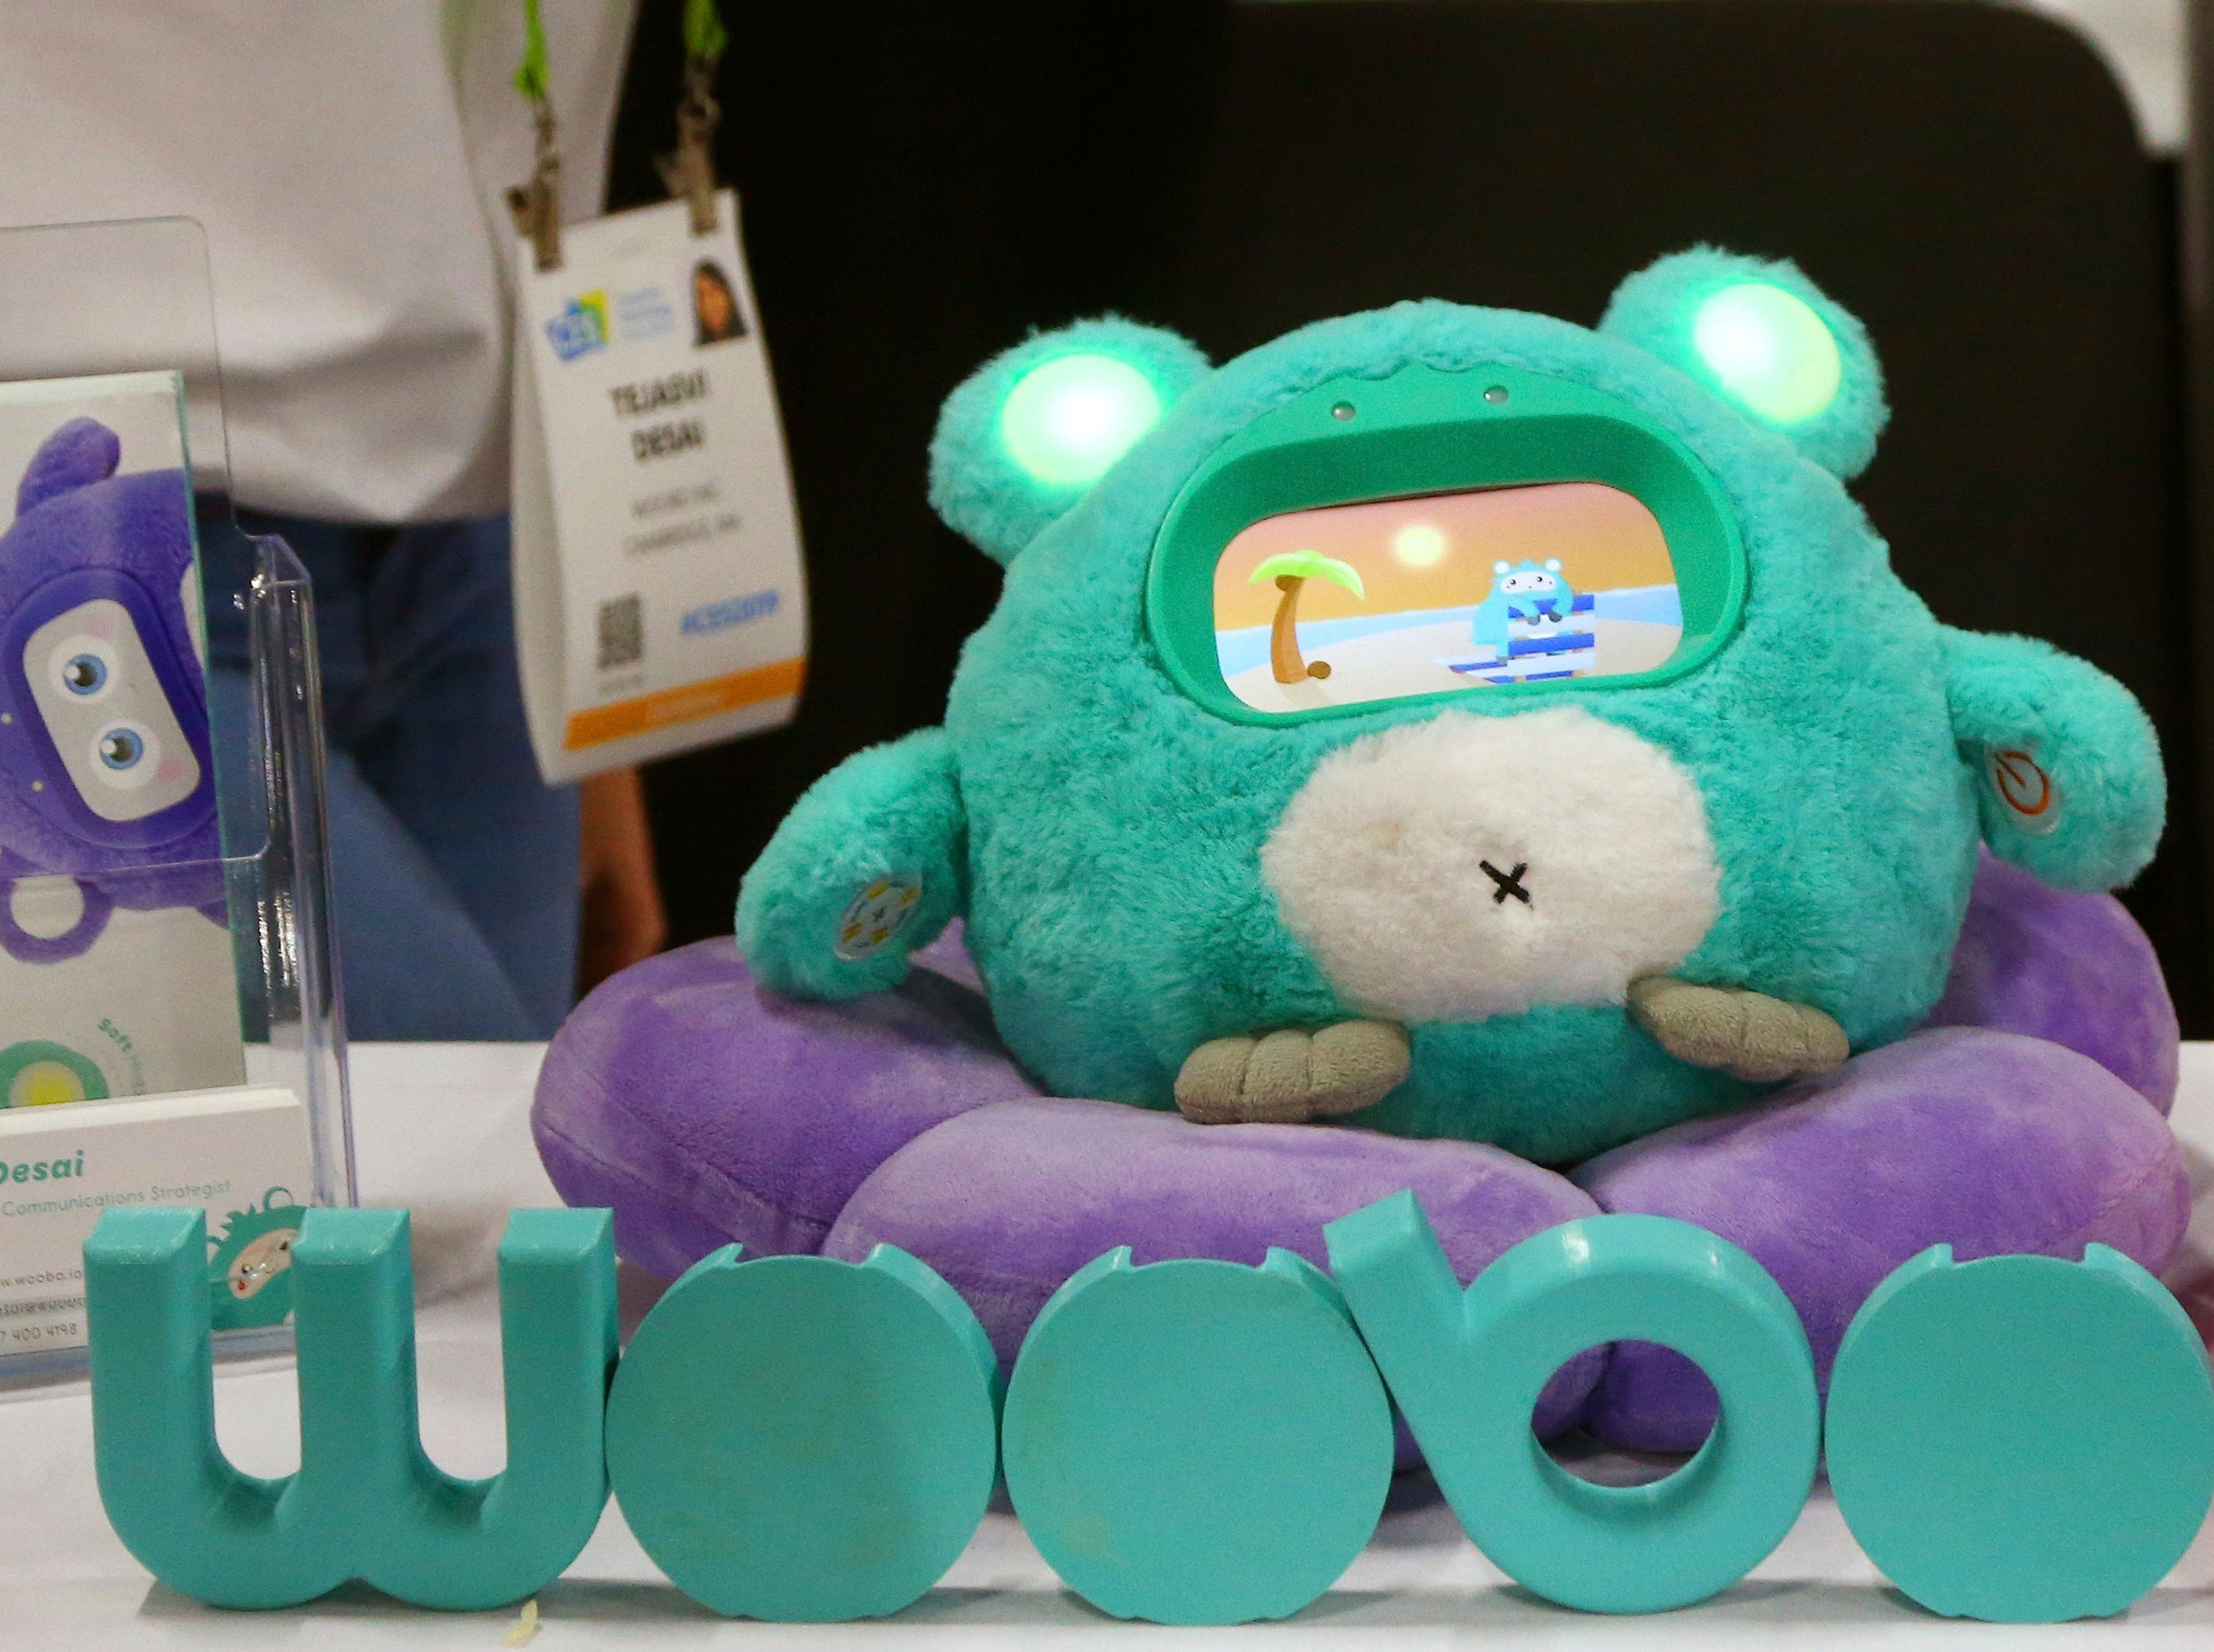 Woobo Inc. displays their stuffed animal interactive companion robots for kids that can answer questions and has other educational content, shown here at the CES Unveiled at CES International on Sunday, Jan. 6, 2019, in Las Vegas.